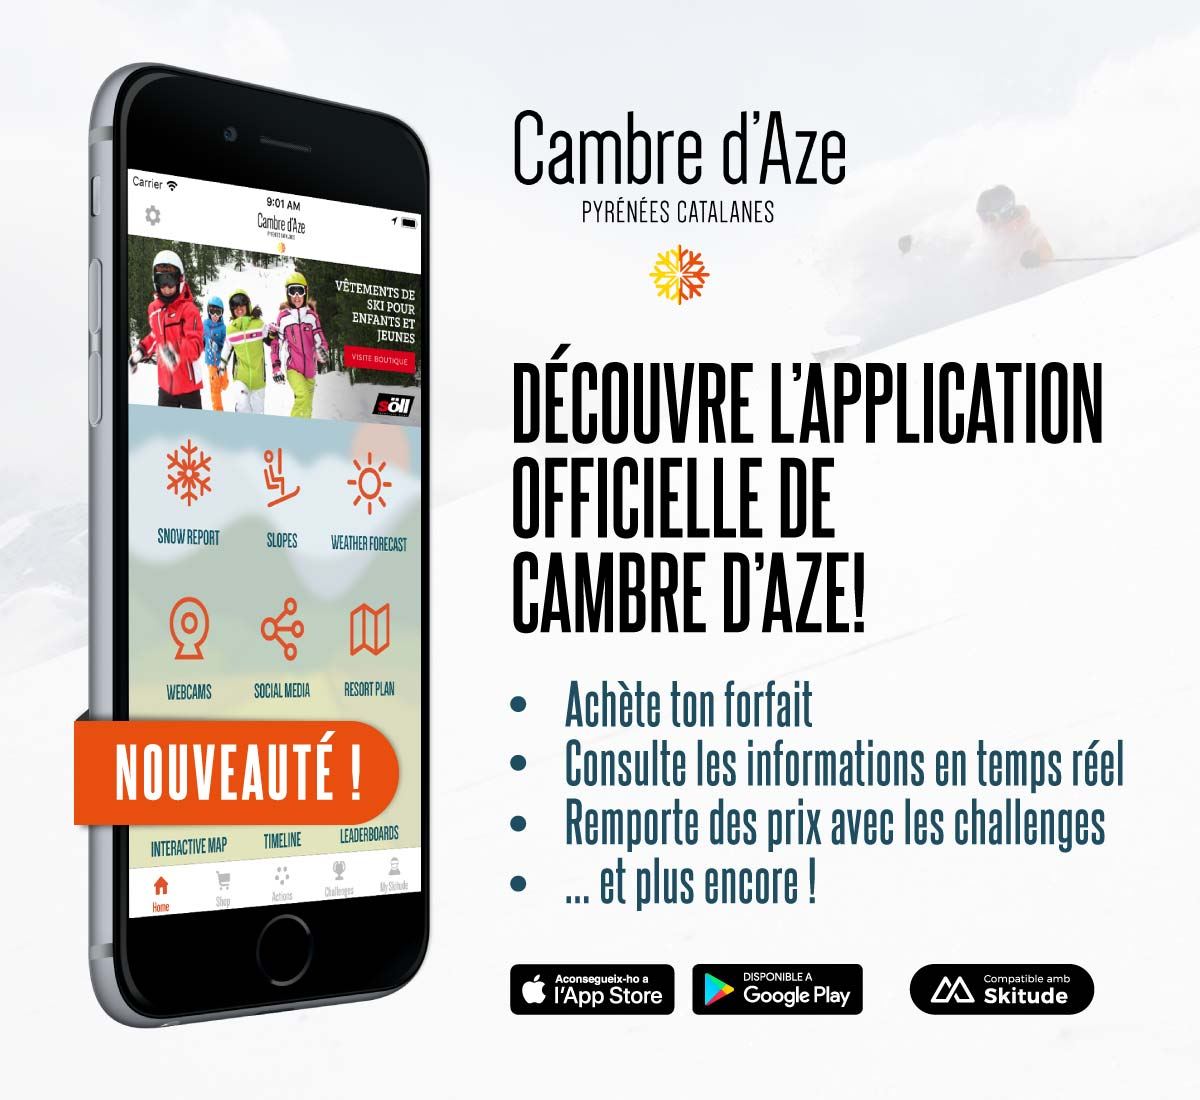 cambre-daze-promo-application-2017-fr.jpg